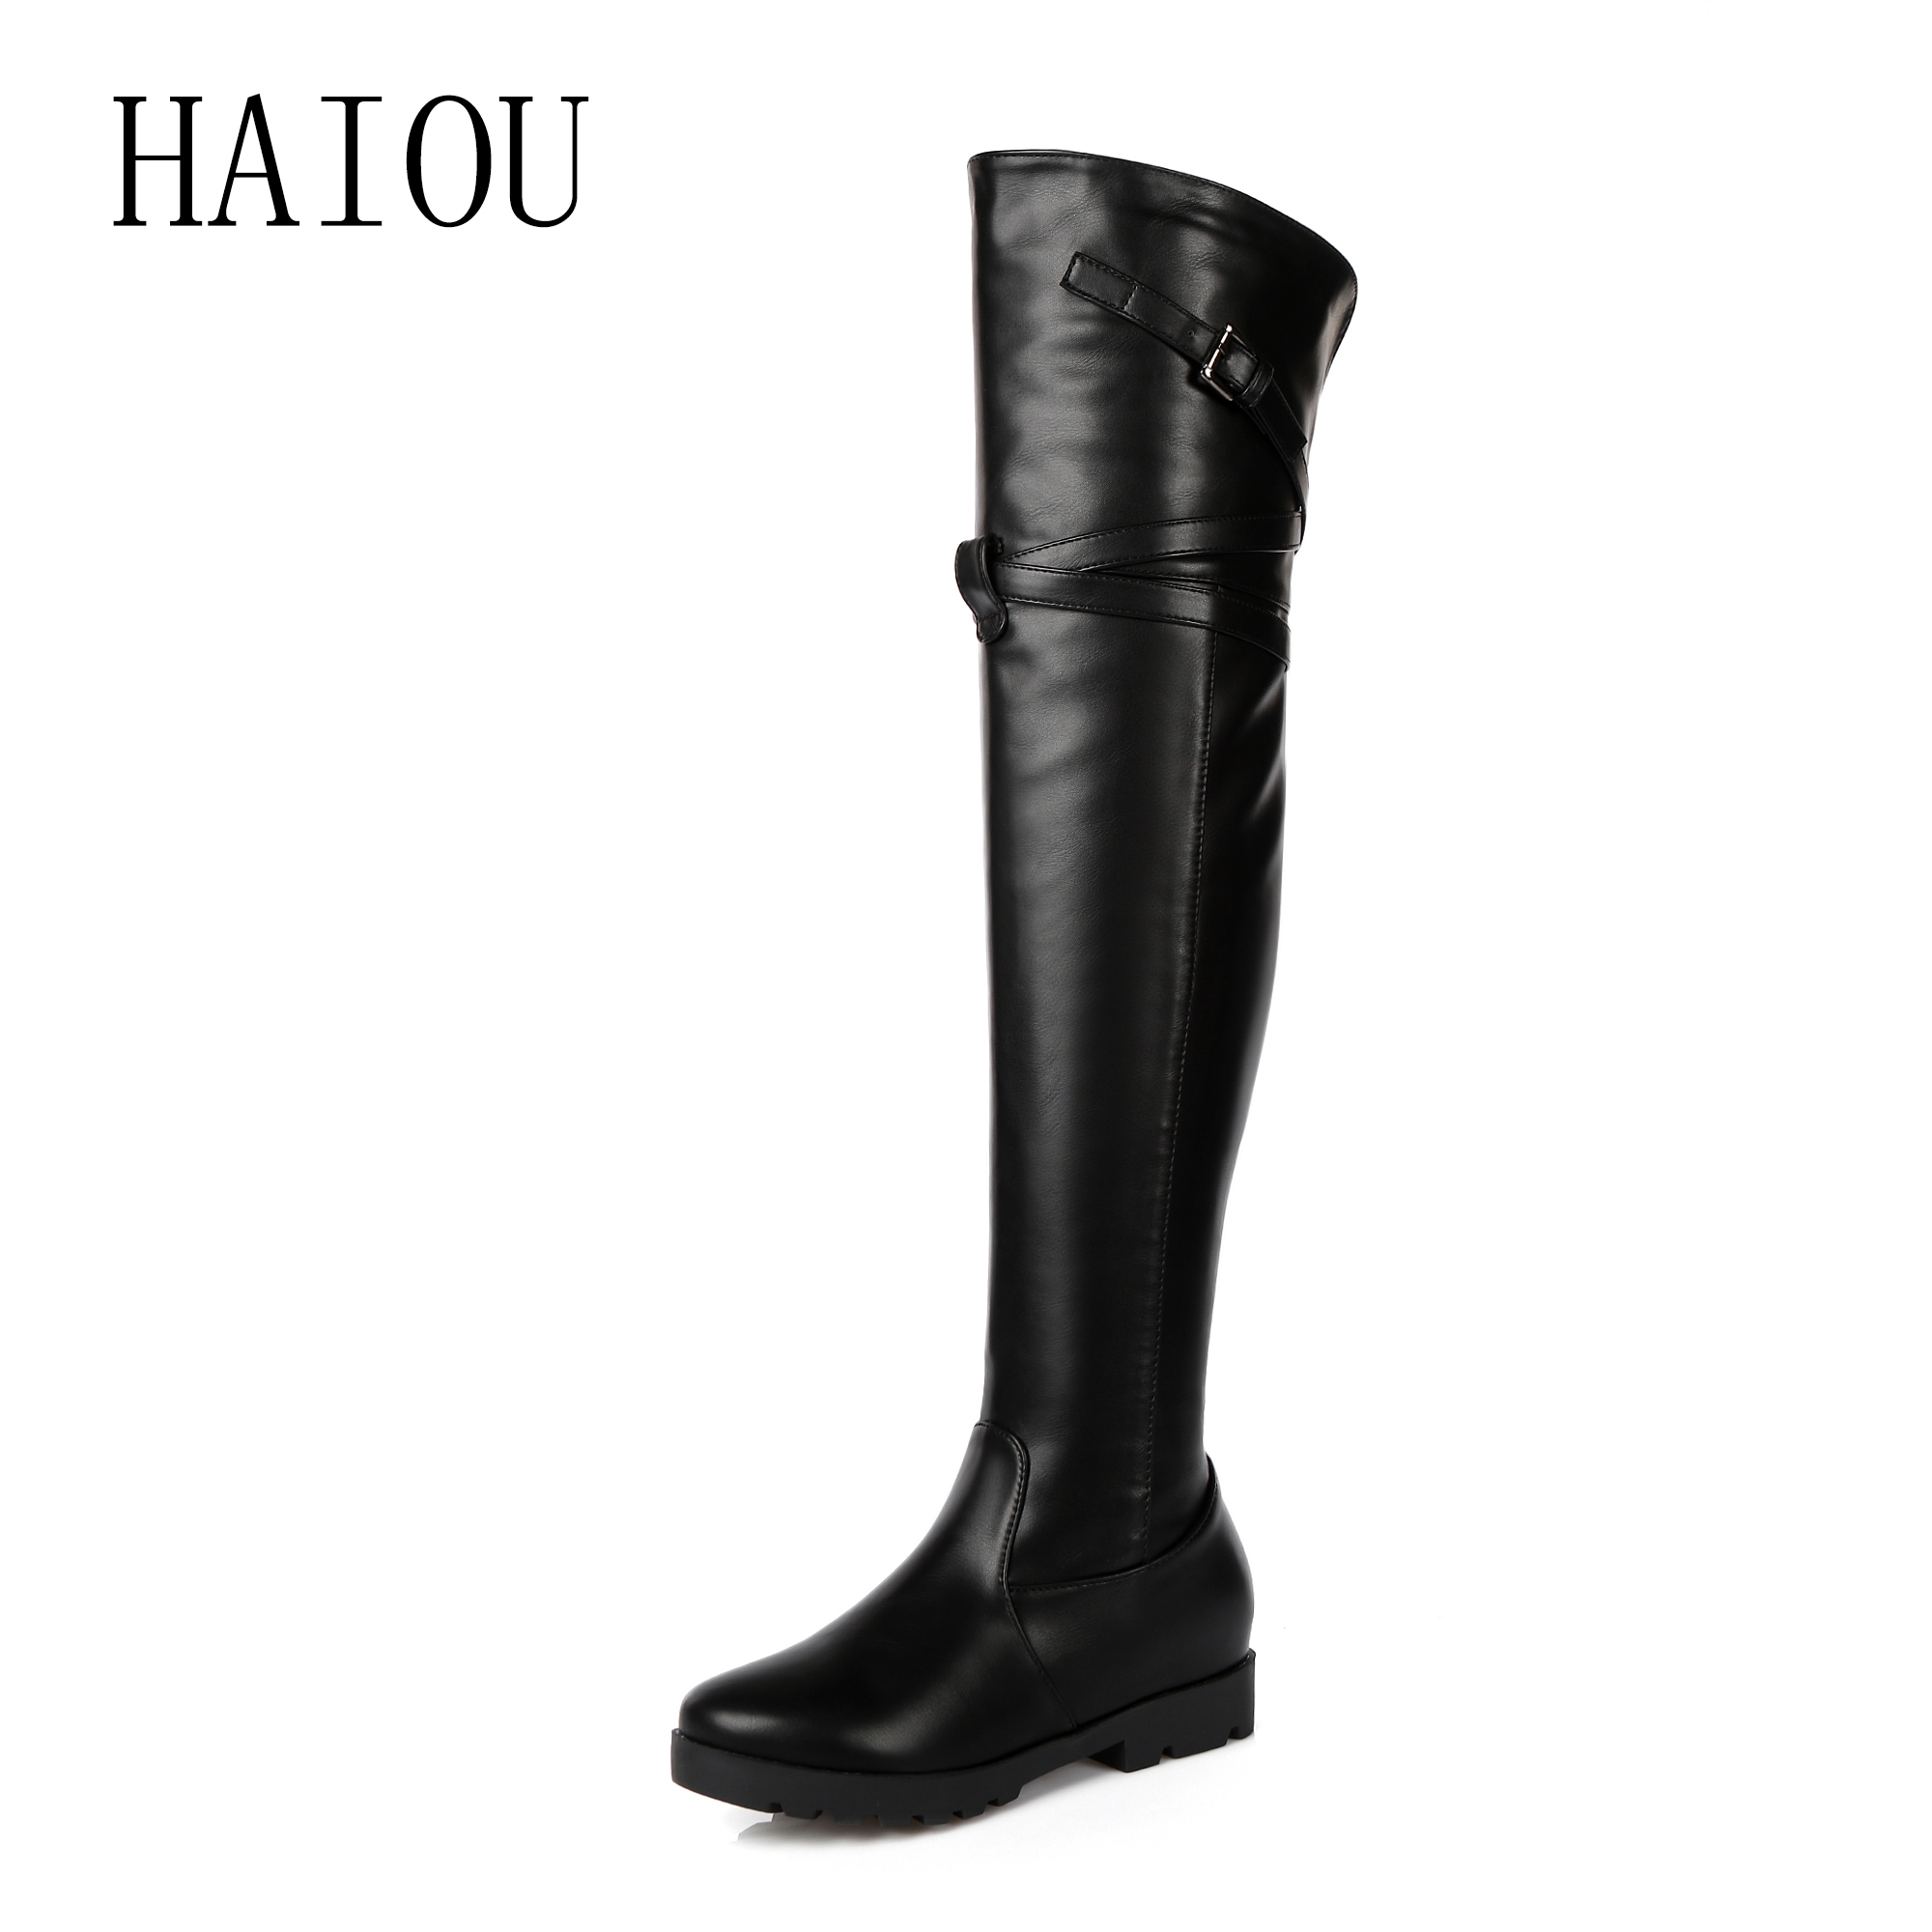 HAIOU Brands Hot Sale Pu+genuine Leather Boots Buckle Zipper Square Heel Autumn Winter Knee High Boots Fashion Ladies Shoes new big size 34 42 high quality pu genuine leather boots square heel winter shoes zipper buckle women knee high boots